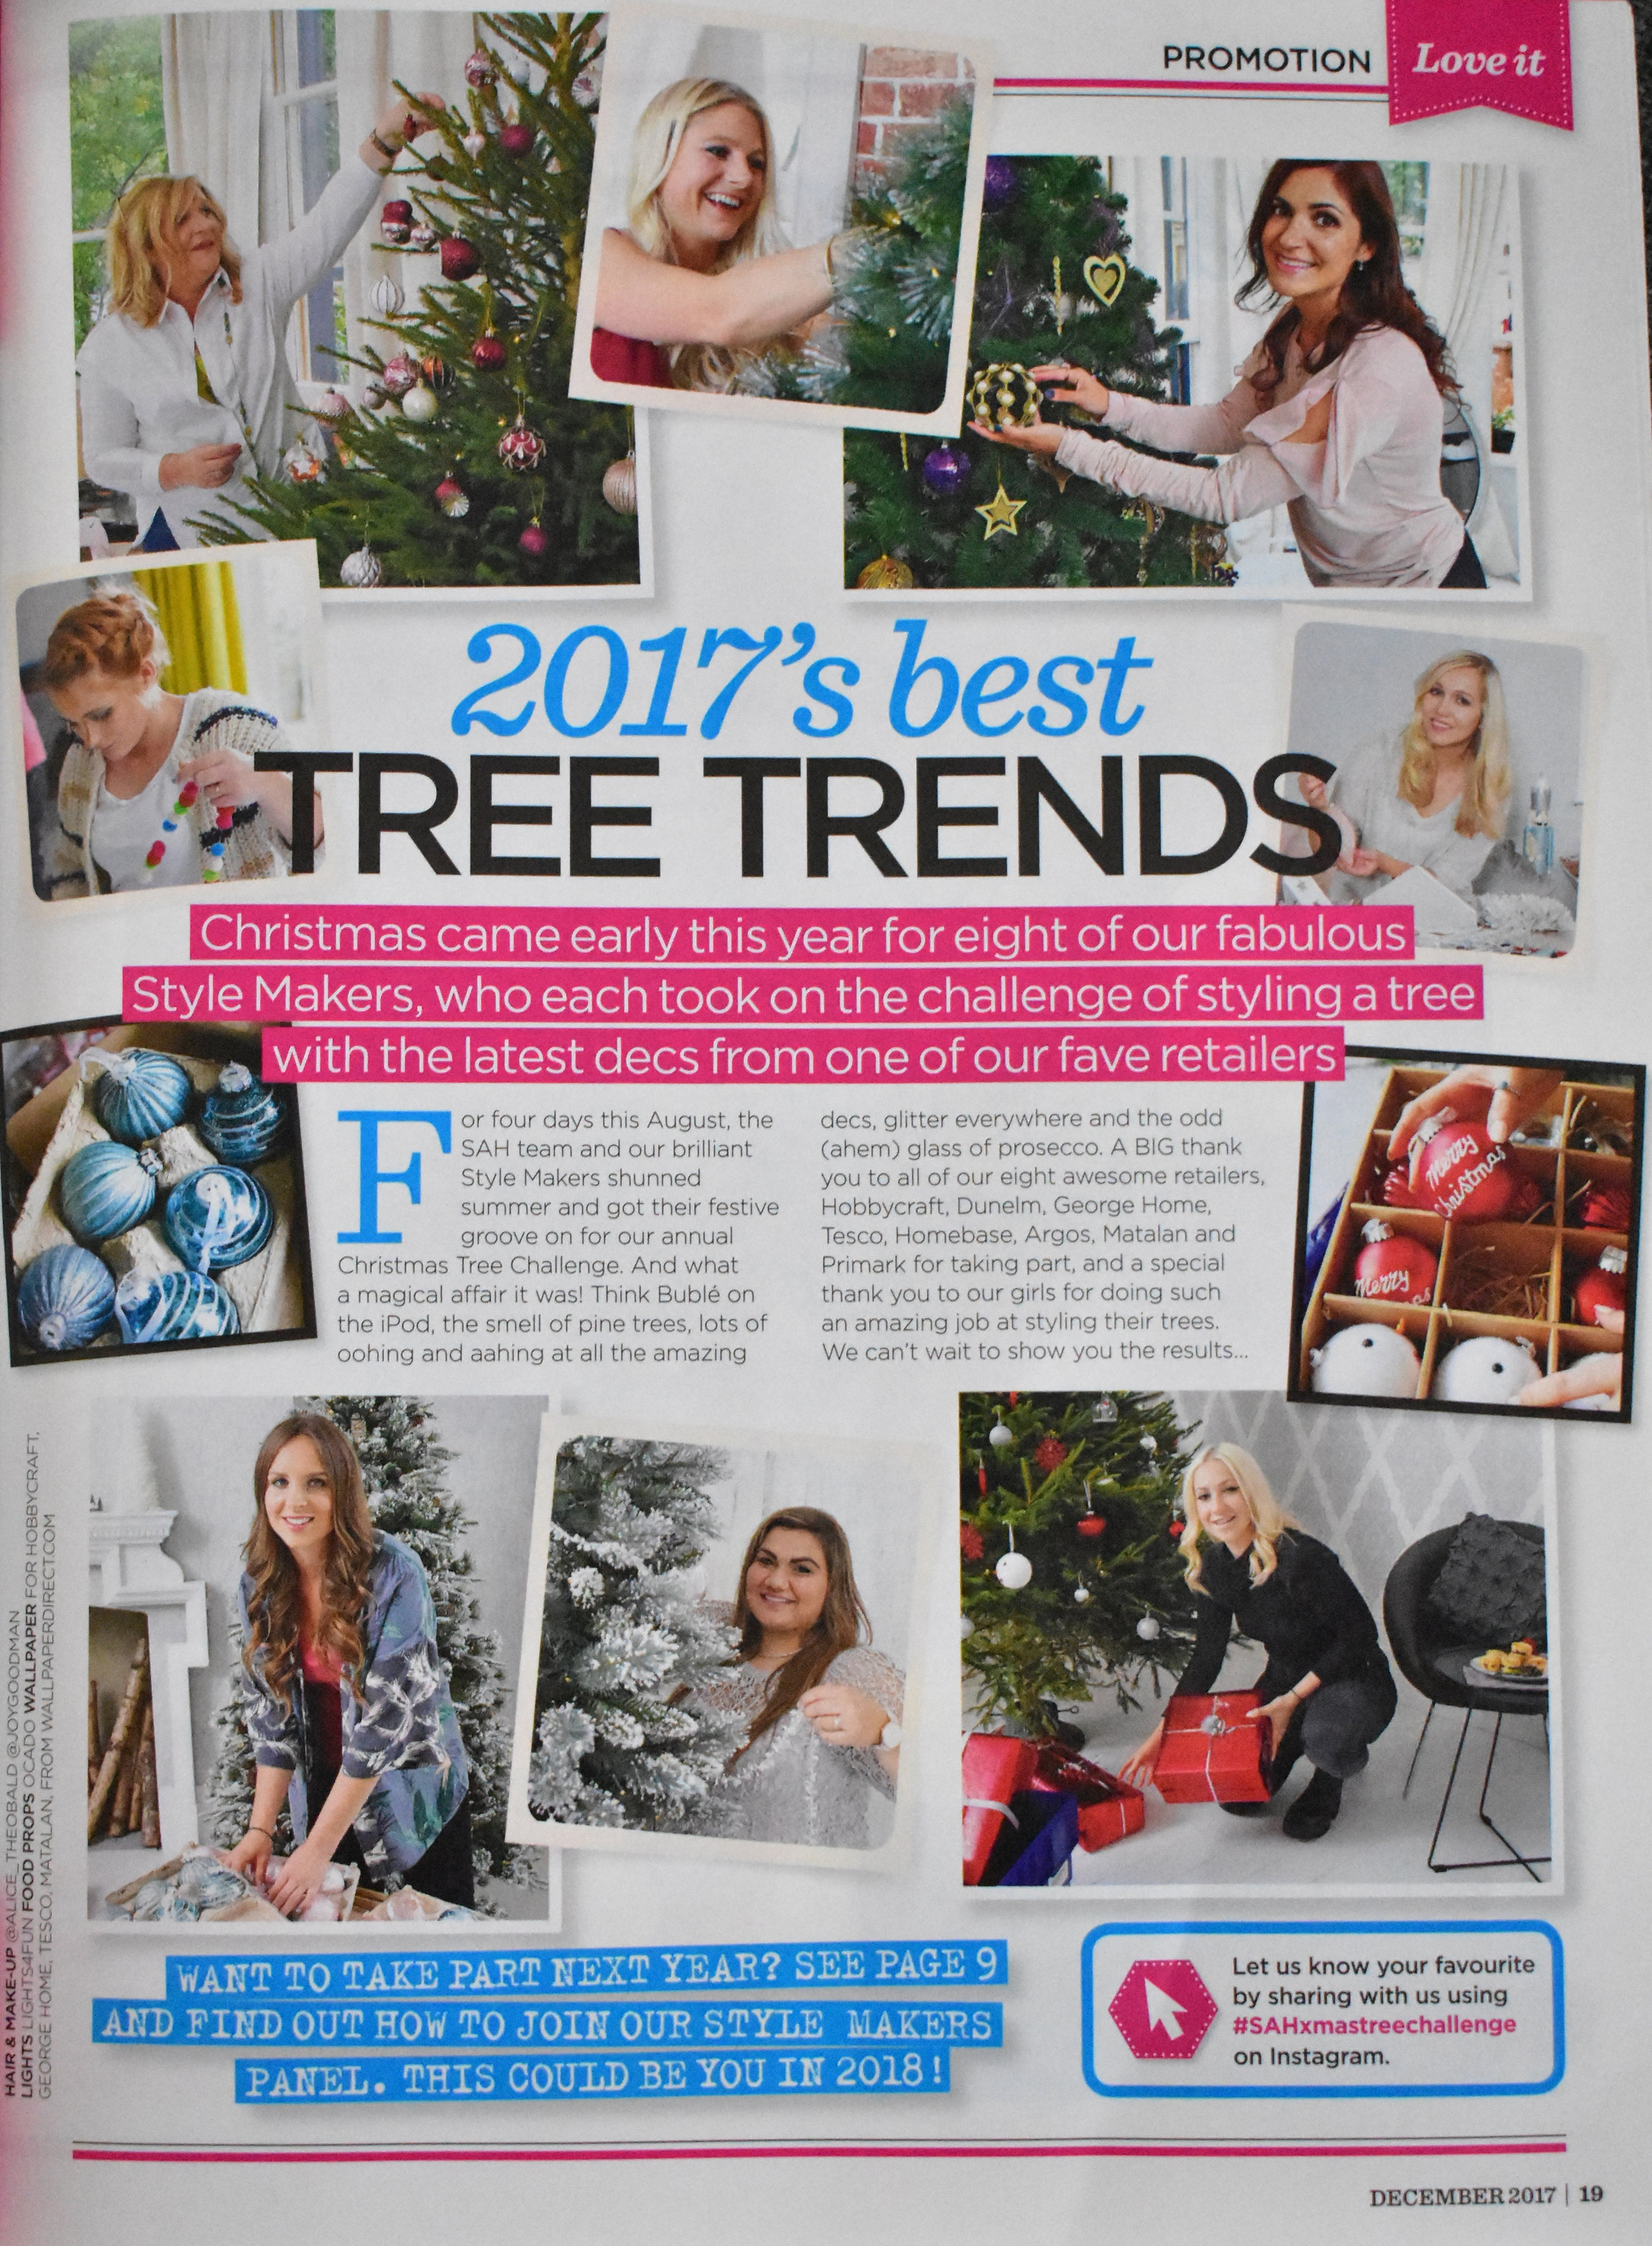 All The Style Makers hard at work, including  Mrs Rackley Home , Athina  Topology Interiors ,  Robyn Swaine ,  Gemma ,  Lotte ,  Lauren